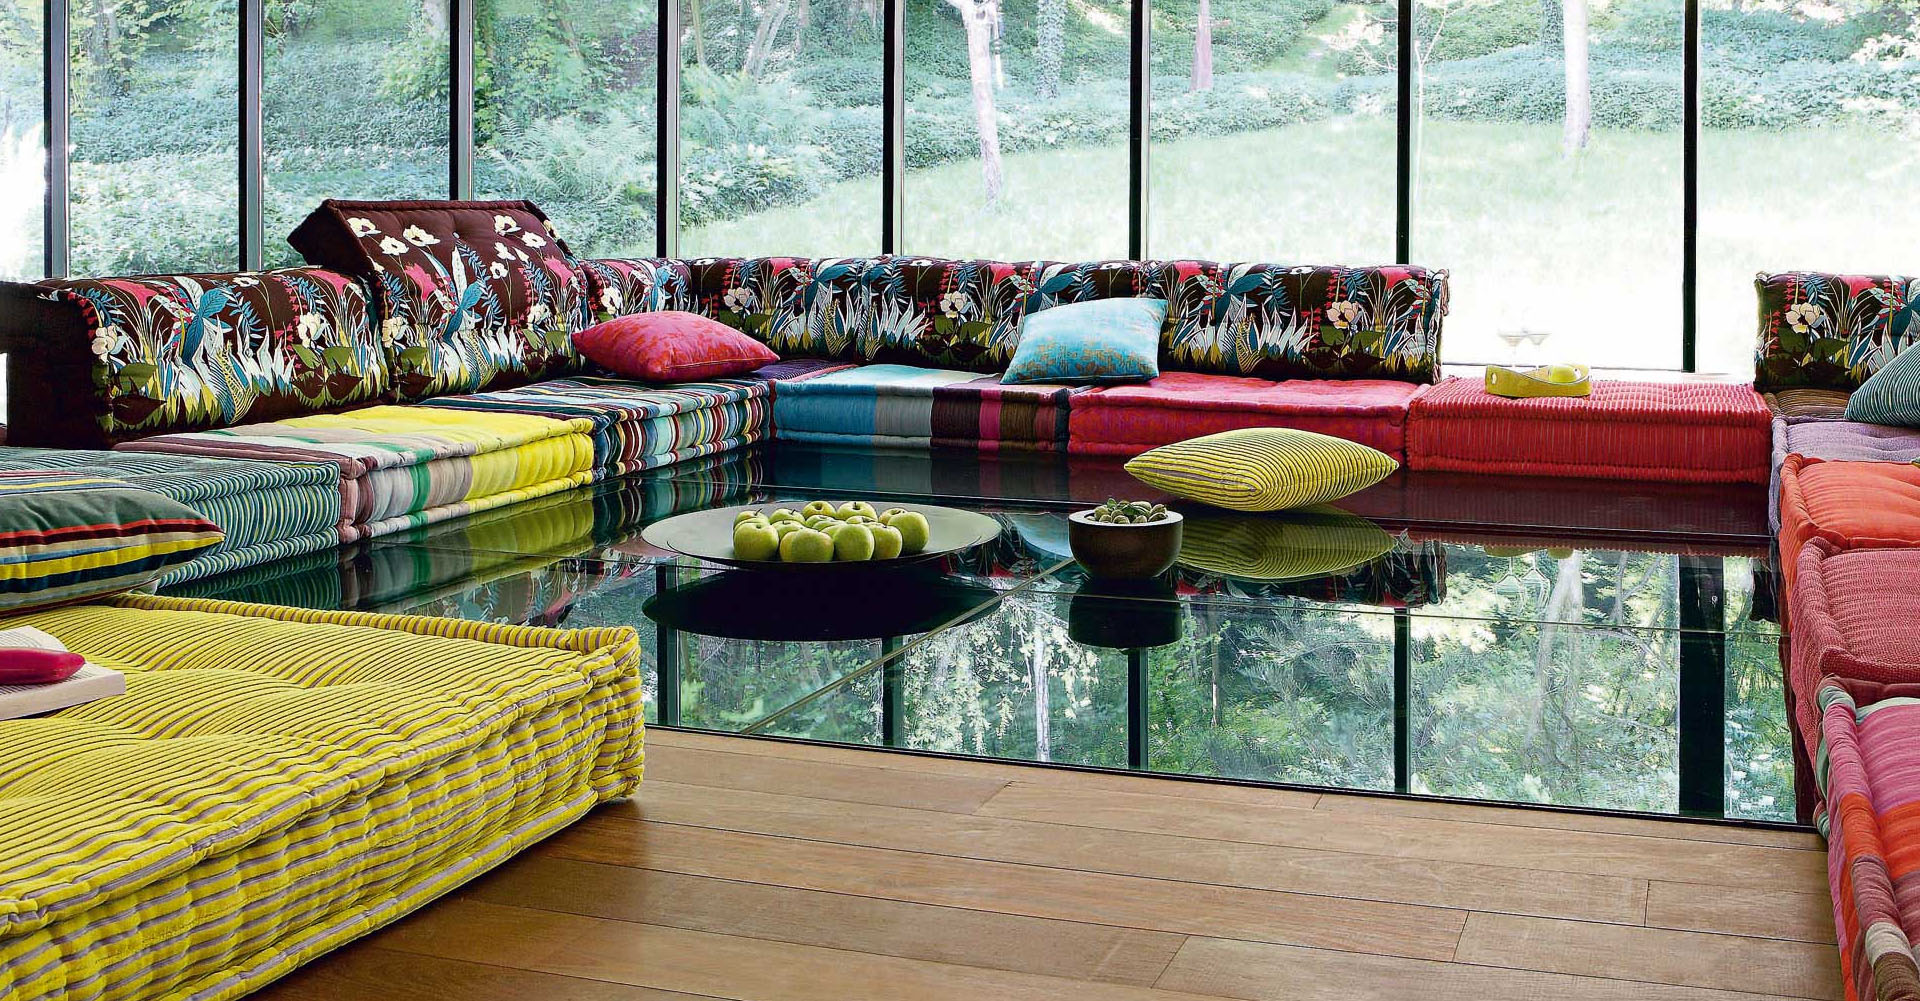 Sofas idesignarch interior design architecture interior decorating - Roche bobois mah jong sofa ...